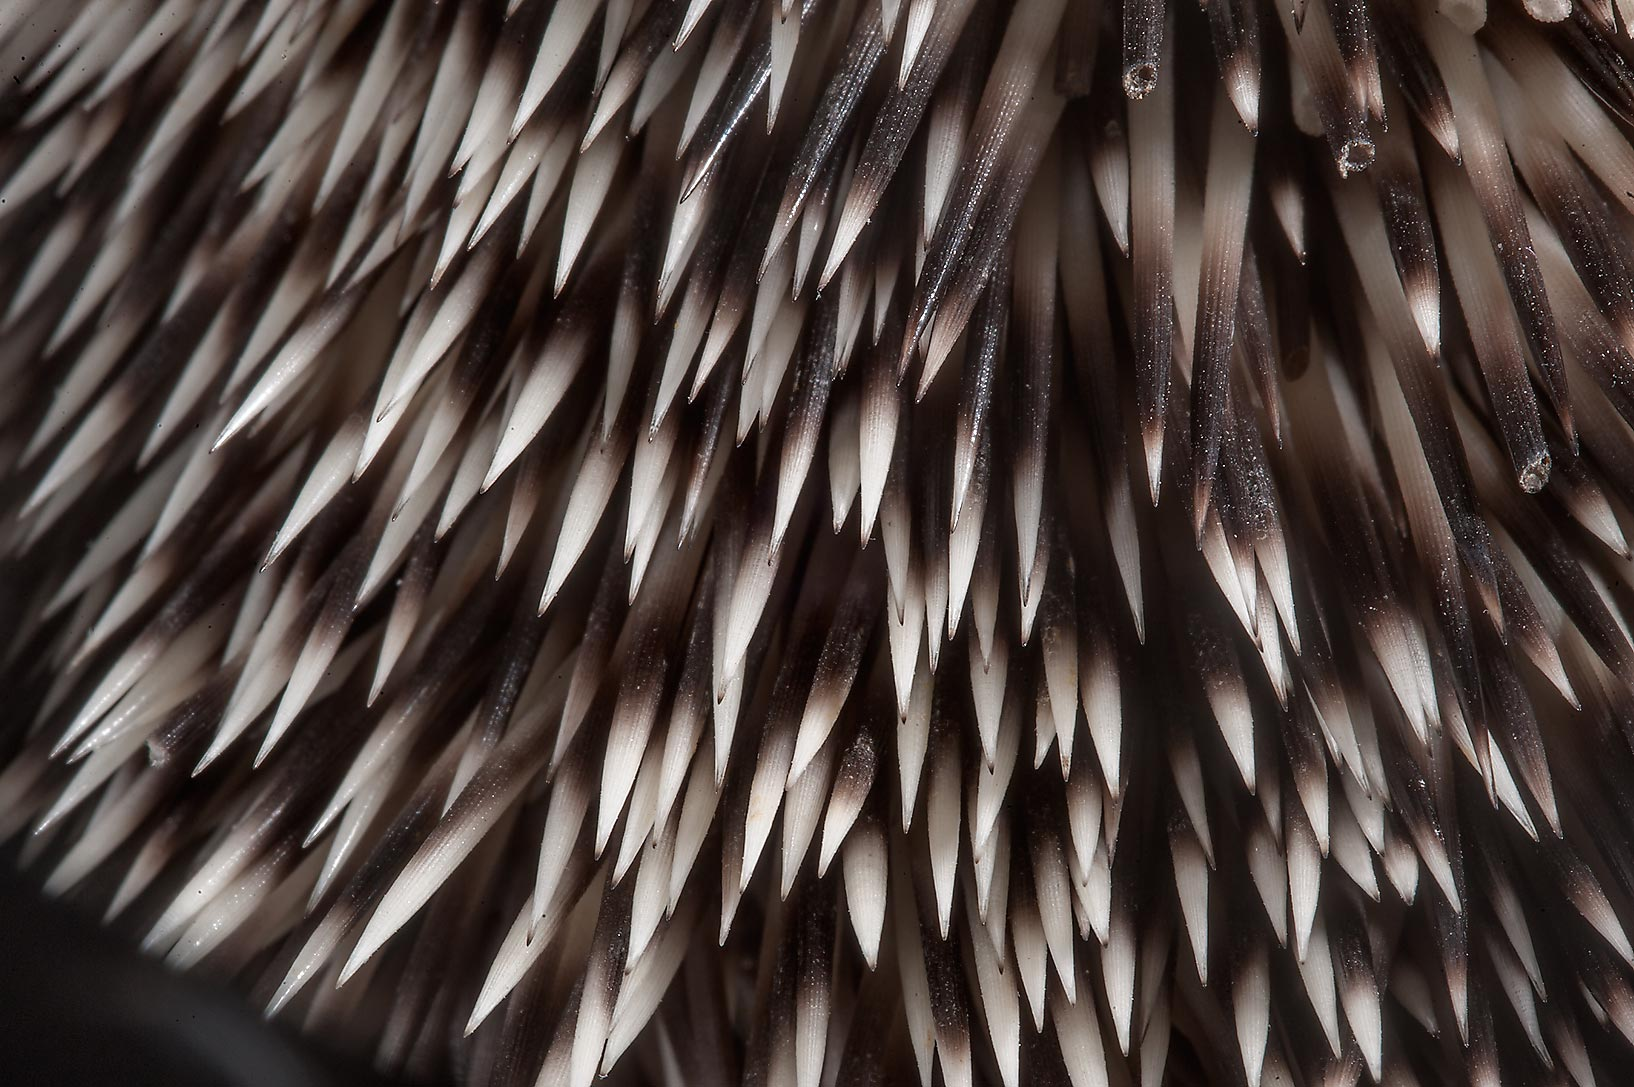 Needles of Ethiopian hedgehog (Paraechinus...RAFRS) near Al Zubara Rd.. Qatar